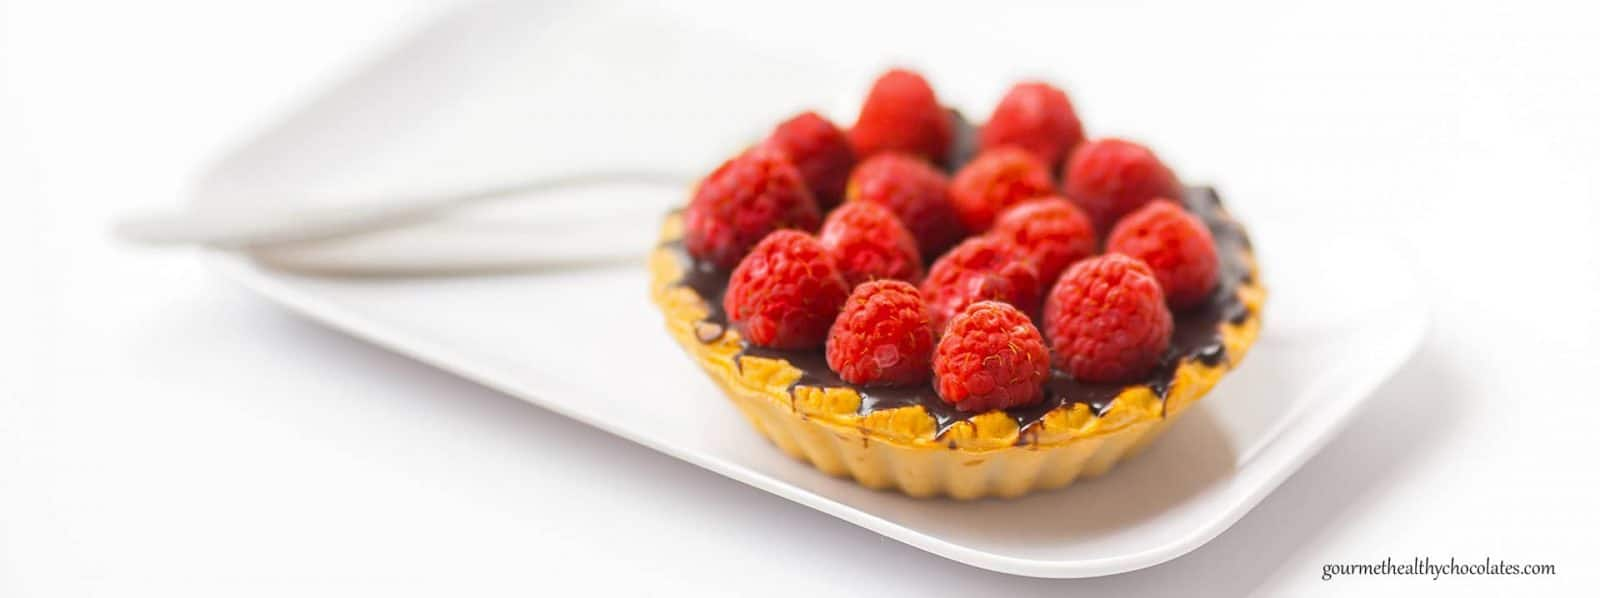 gourmet-healthy-chocolate-raspberry-tart-lg